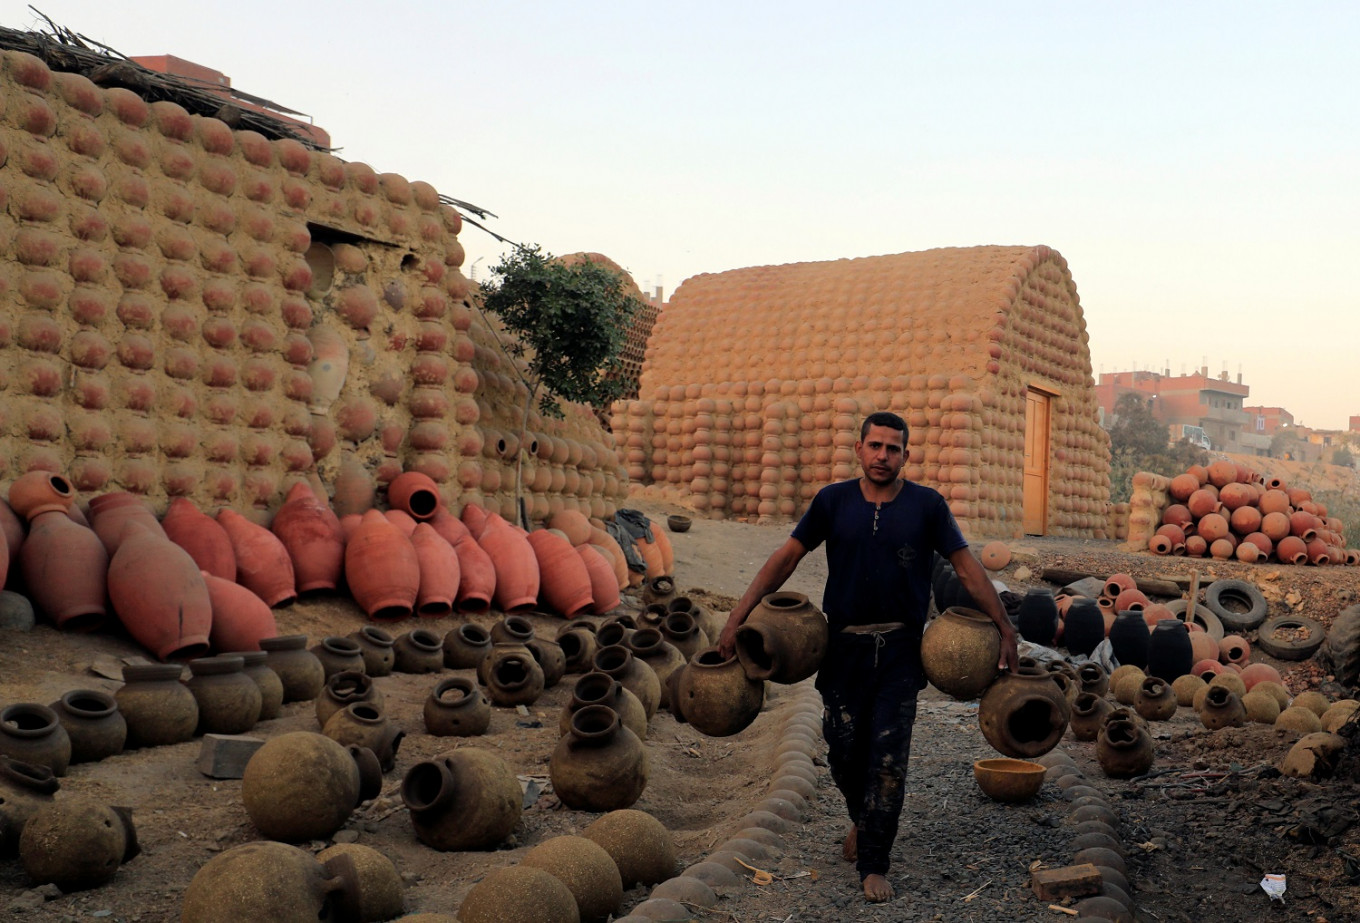 Egyptian potters using Nile mud seek to protect their craft